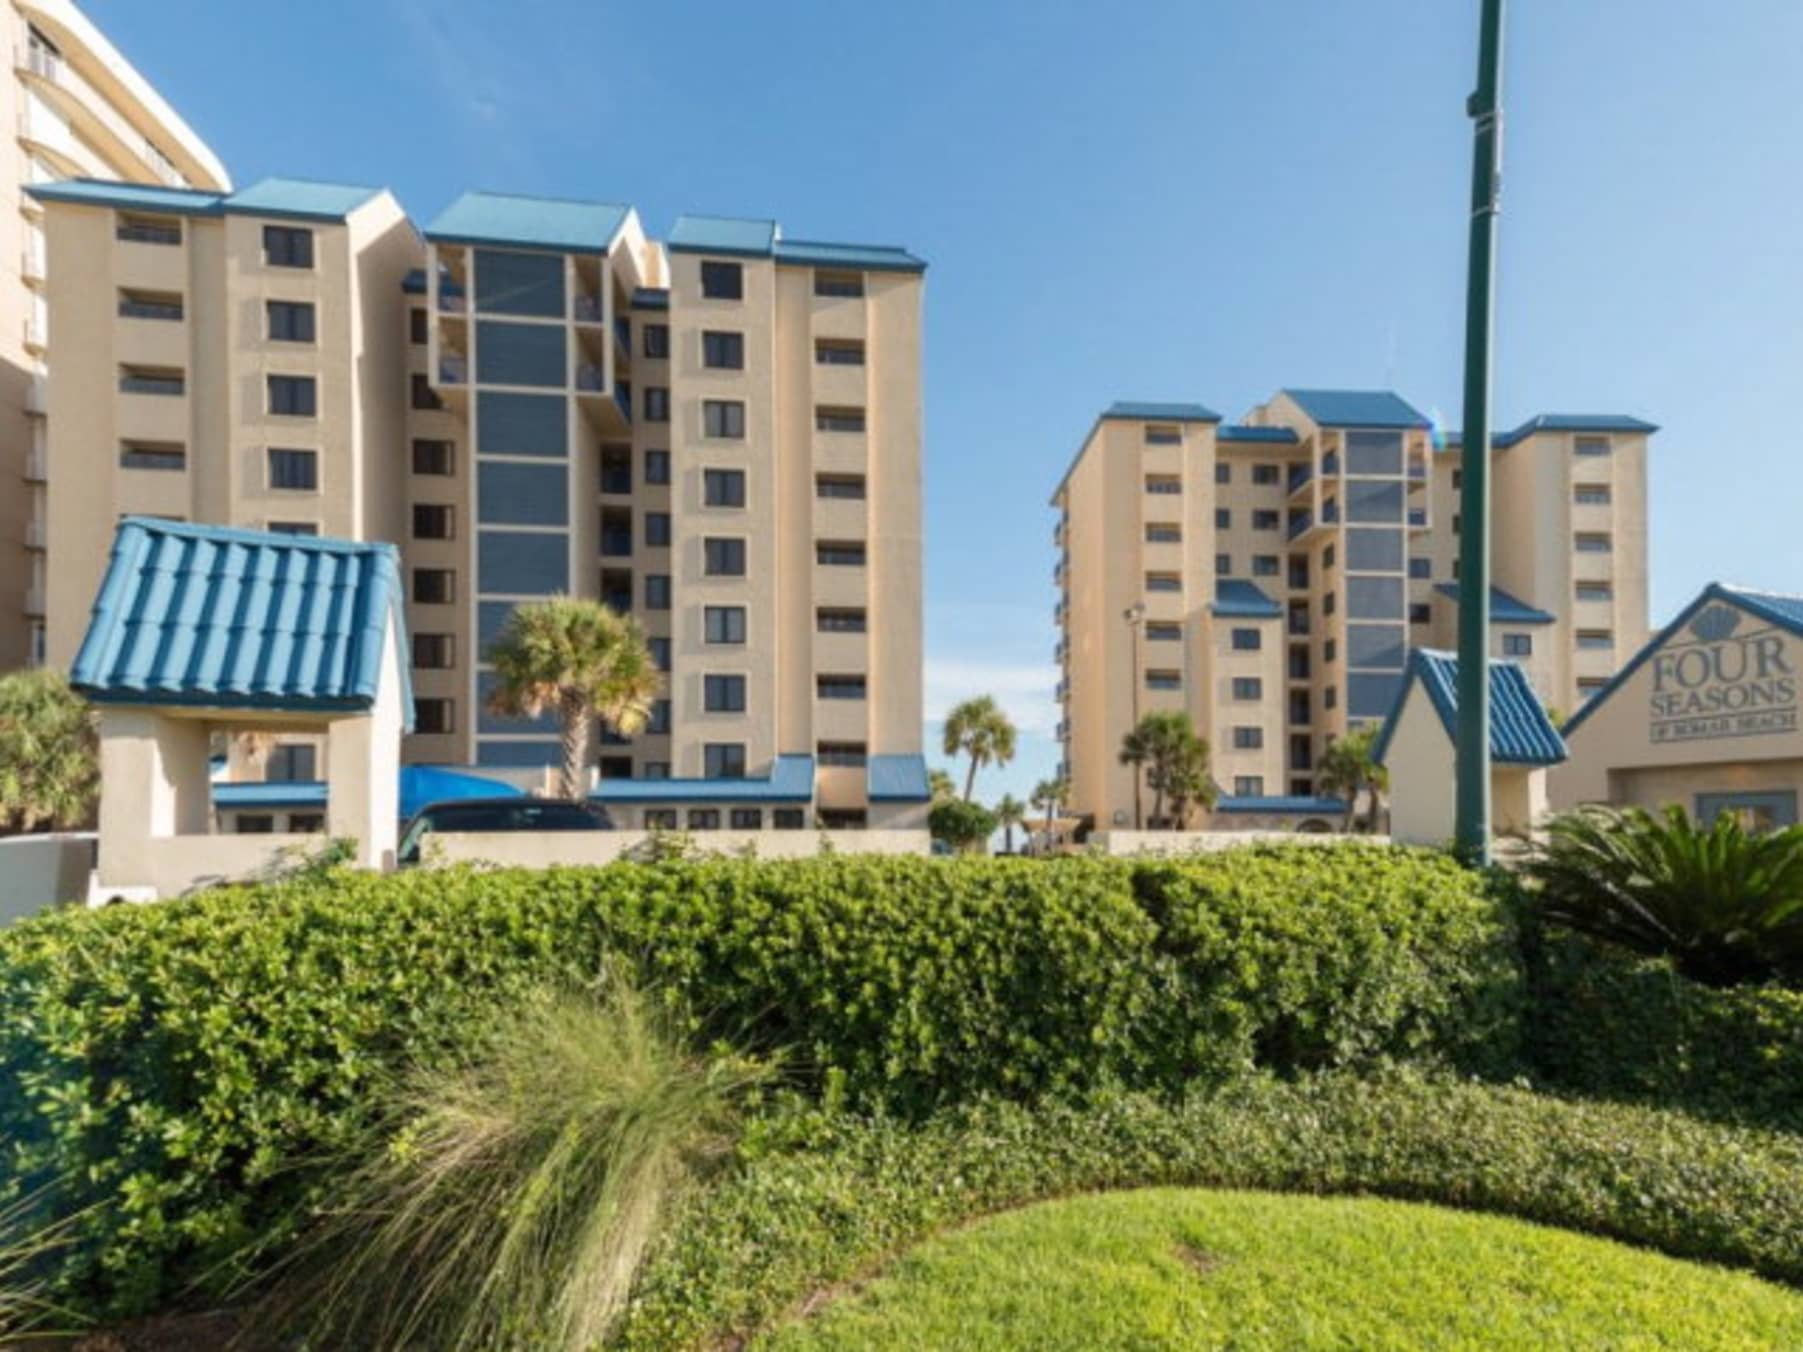 Condos For In Four Seasons Orange Beach Al